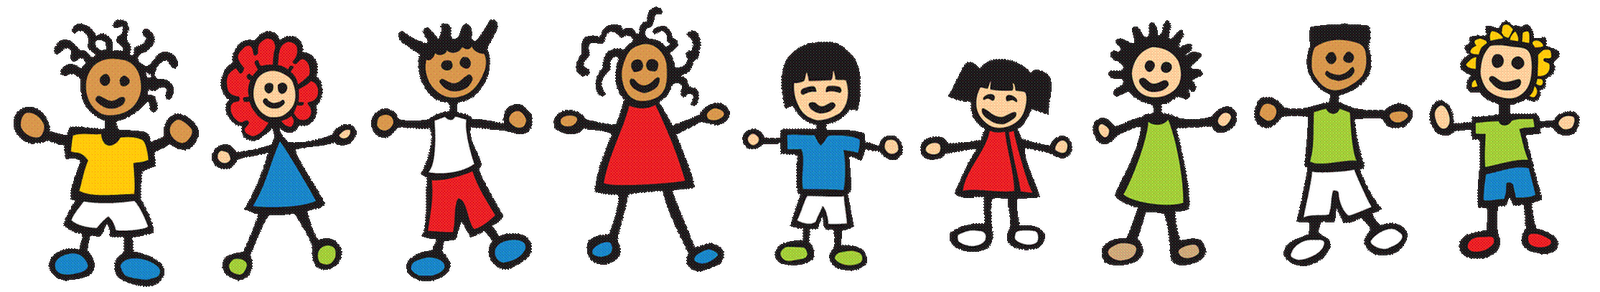 Free friendship clipart pictures 4